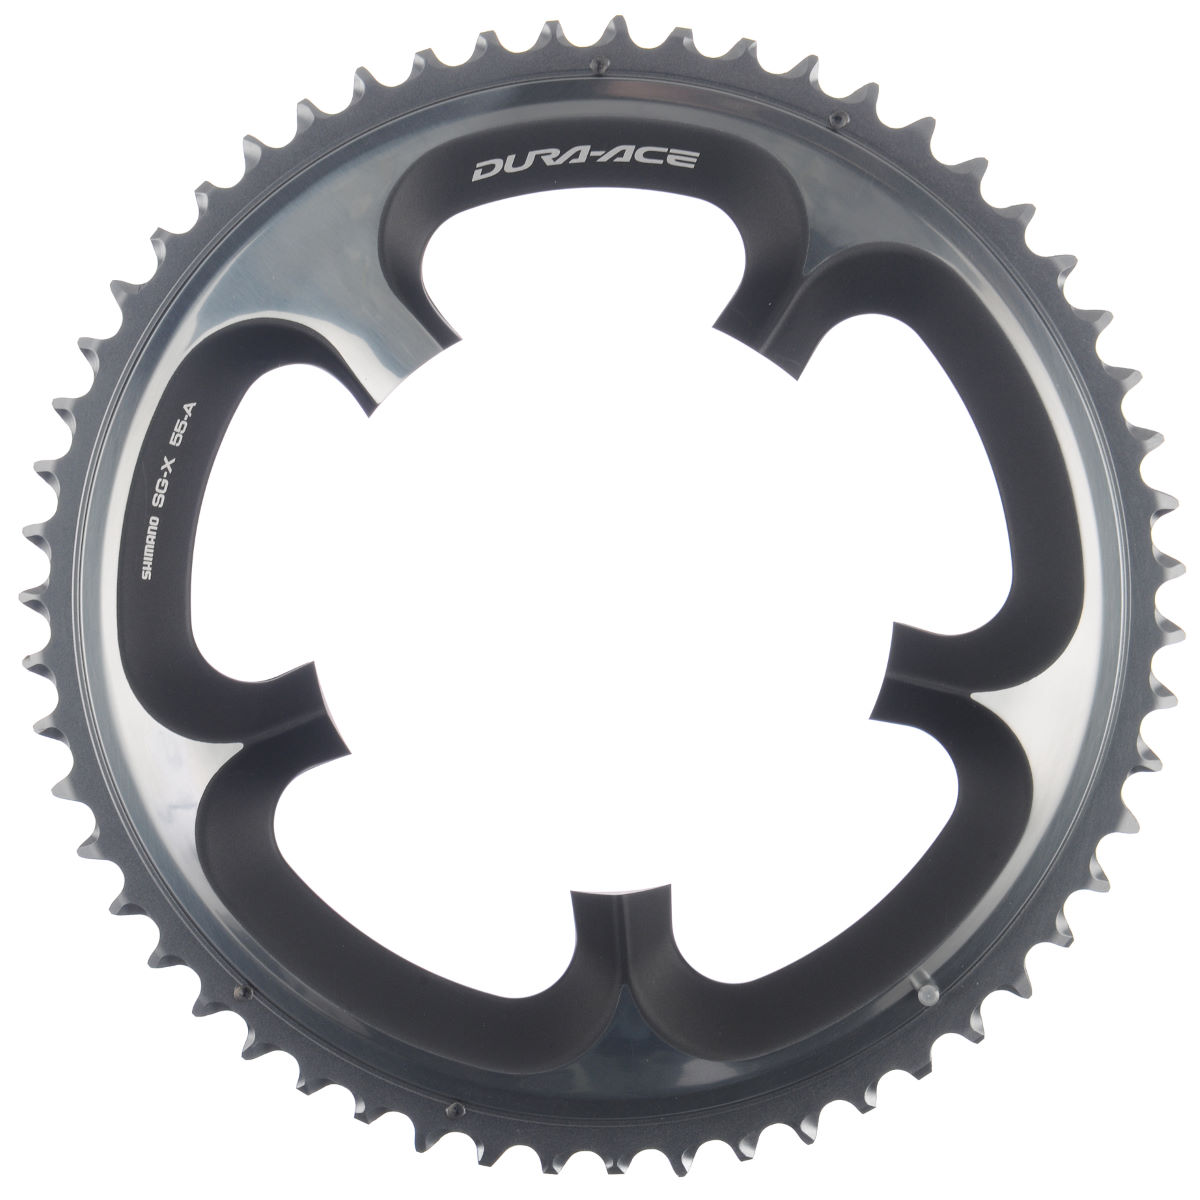 Shimano Dura-ace Fc7900 10sp Double Chainrings - 130mm 55t A-type